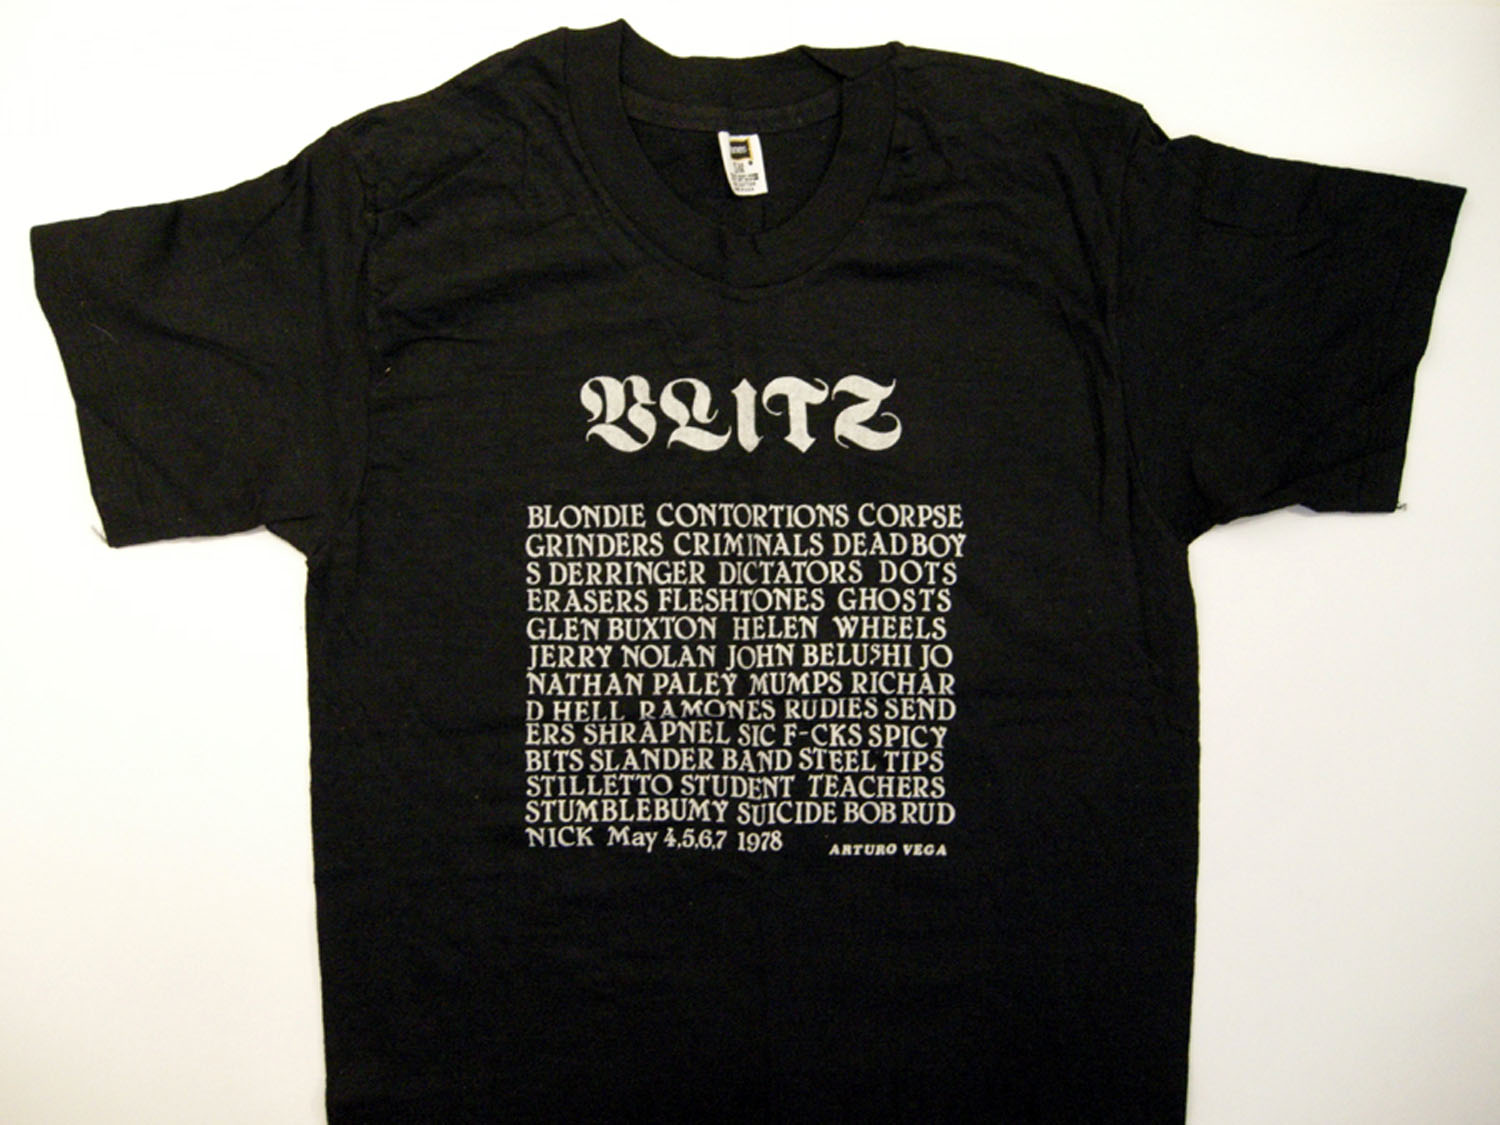 Arturo Vega, Blitz Benefit, CBGB, May 4,5,6,7, 1978, Silkscreen T-Shirt, 1978 Benefit concert T shirt to help pay the medical expenses of Johnny Blitz of the Dead Boys injured in a knife fight.